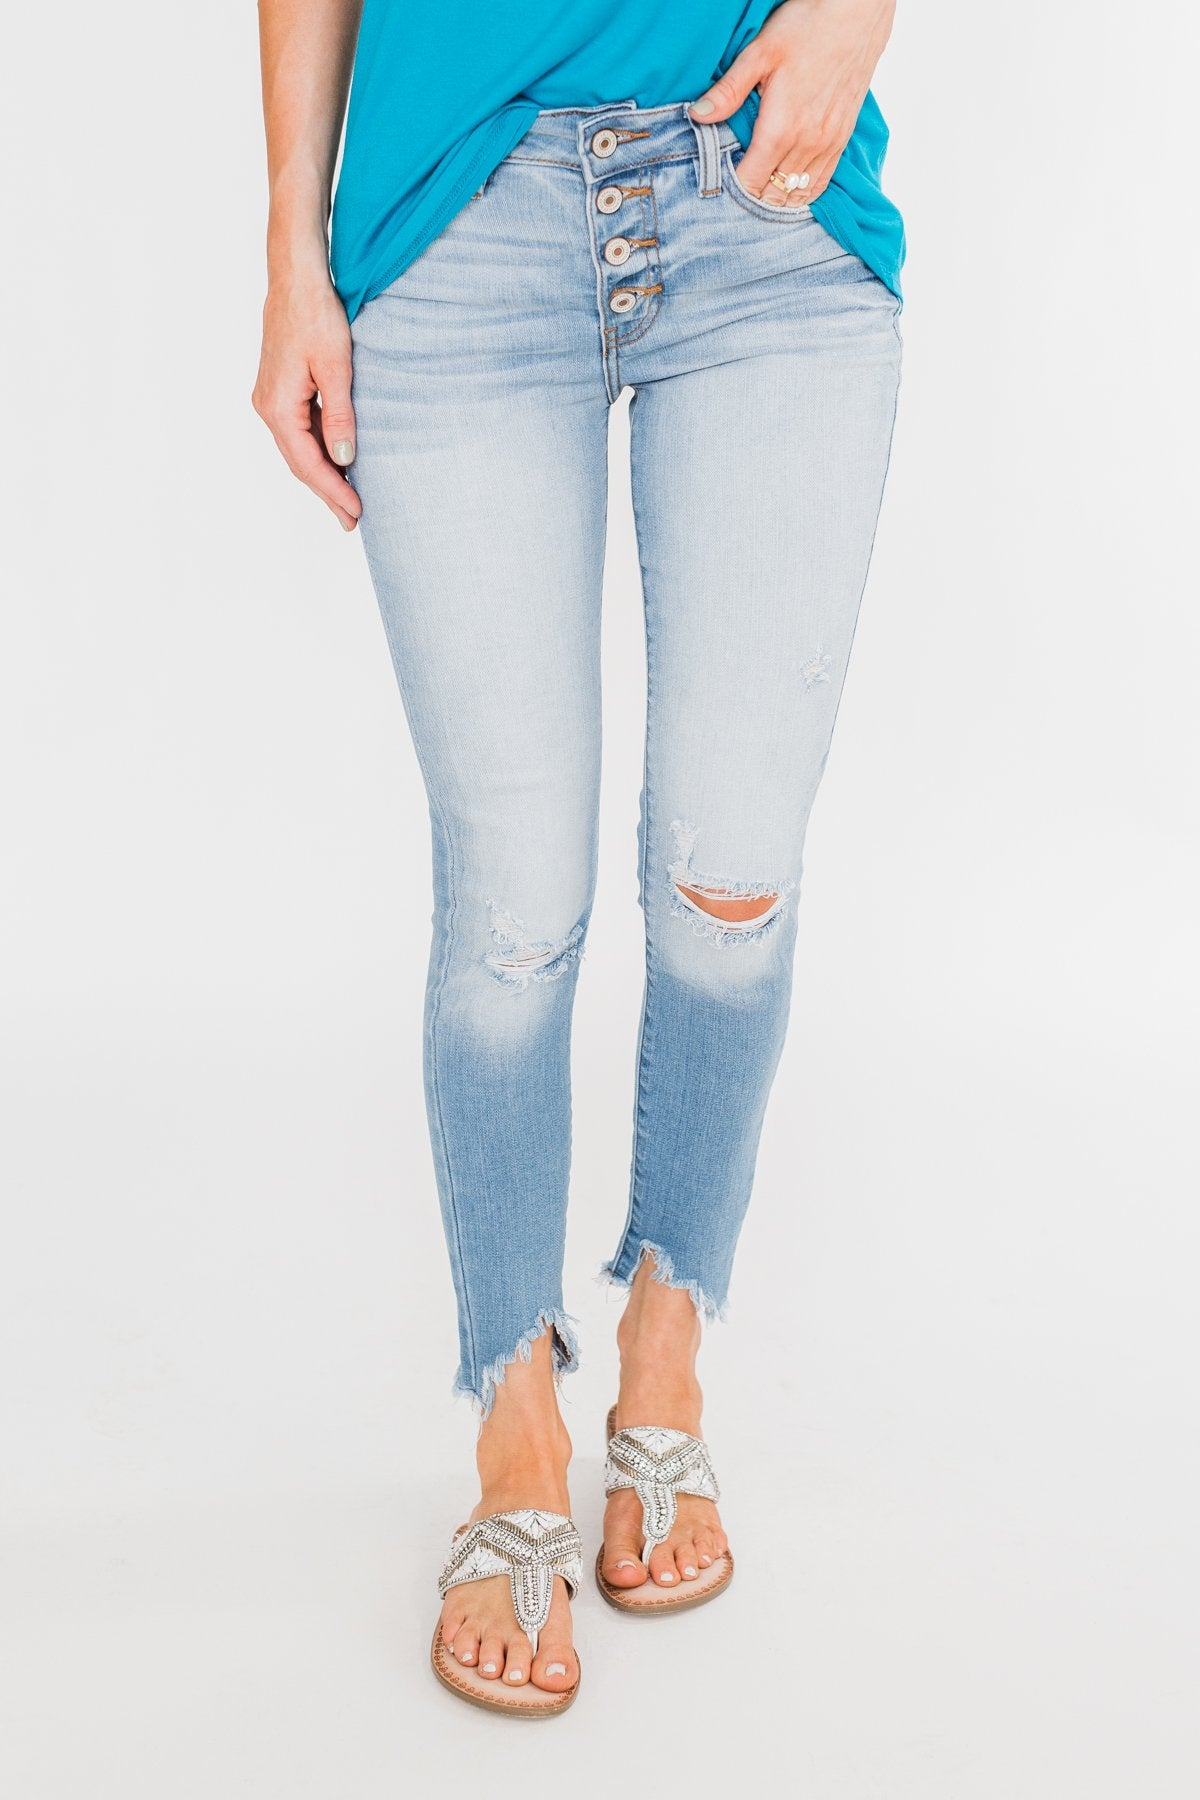 C'est Toi Distressed Ankle Cuff Skinnies- Jaci Wash